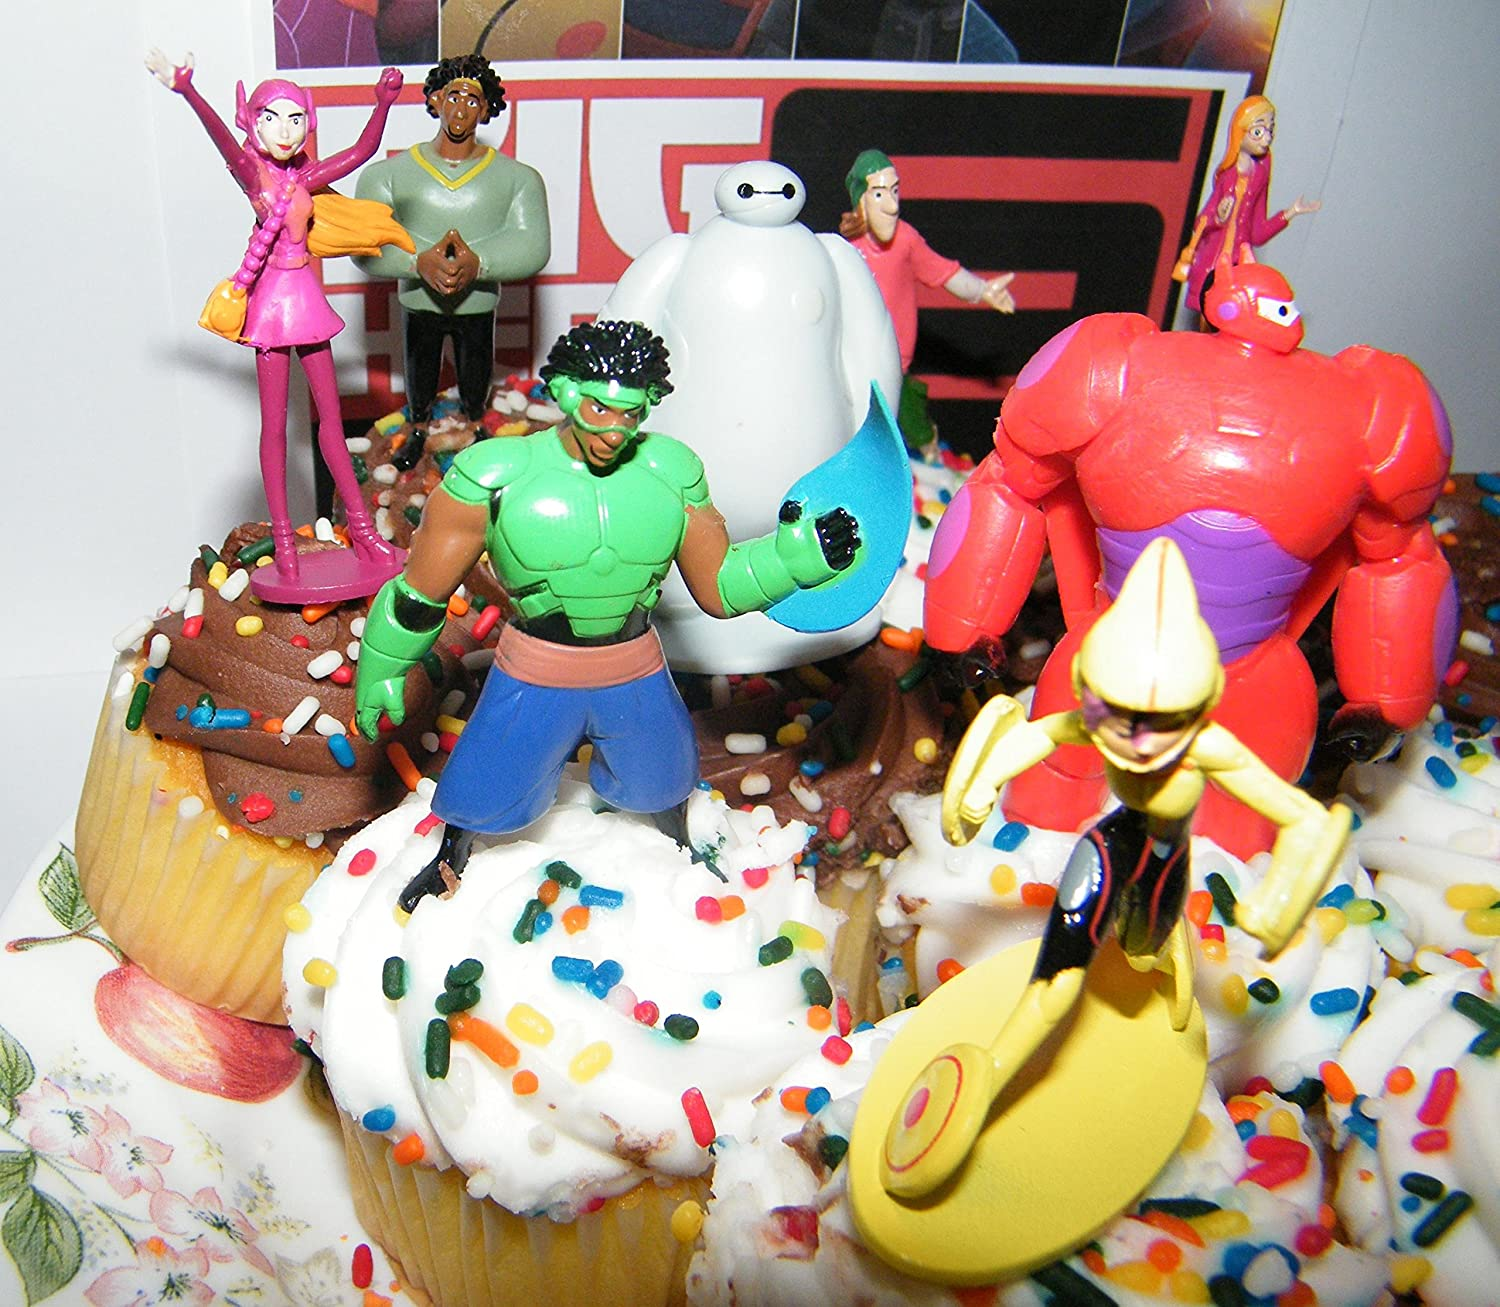 Disney Big Hero 6 Figure Cake Toppers Cupcake Party Favor